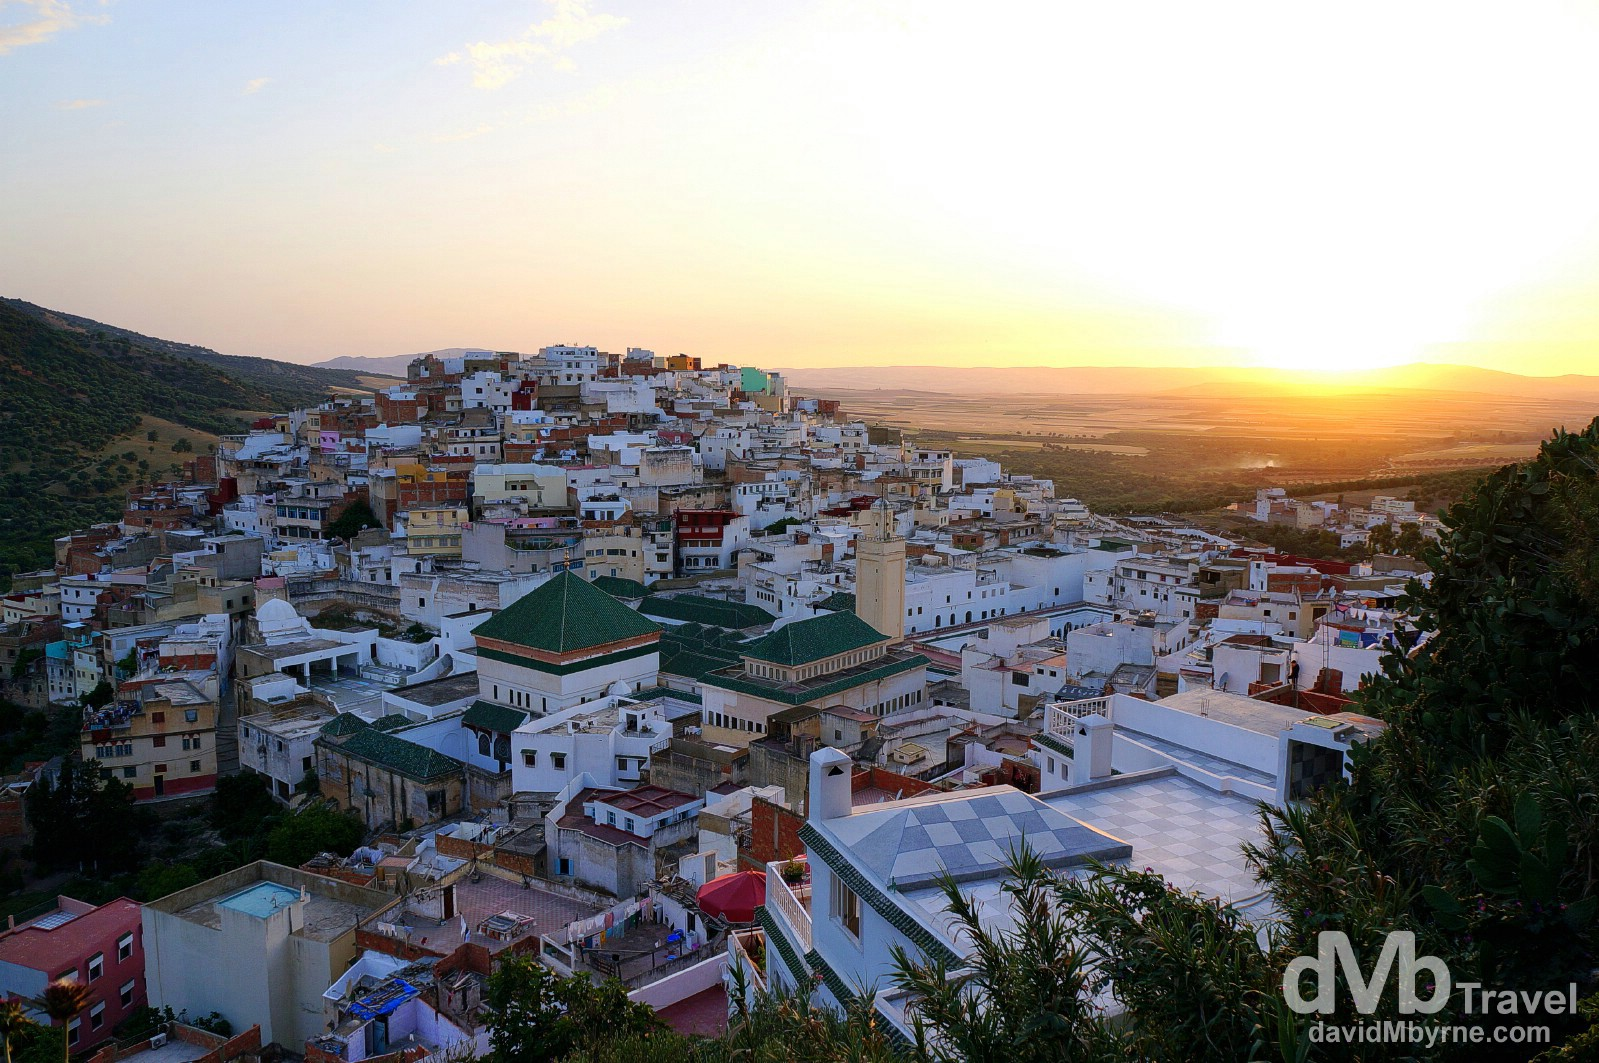 Moulay Idriss, Morocco